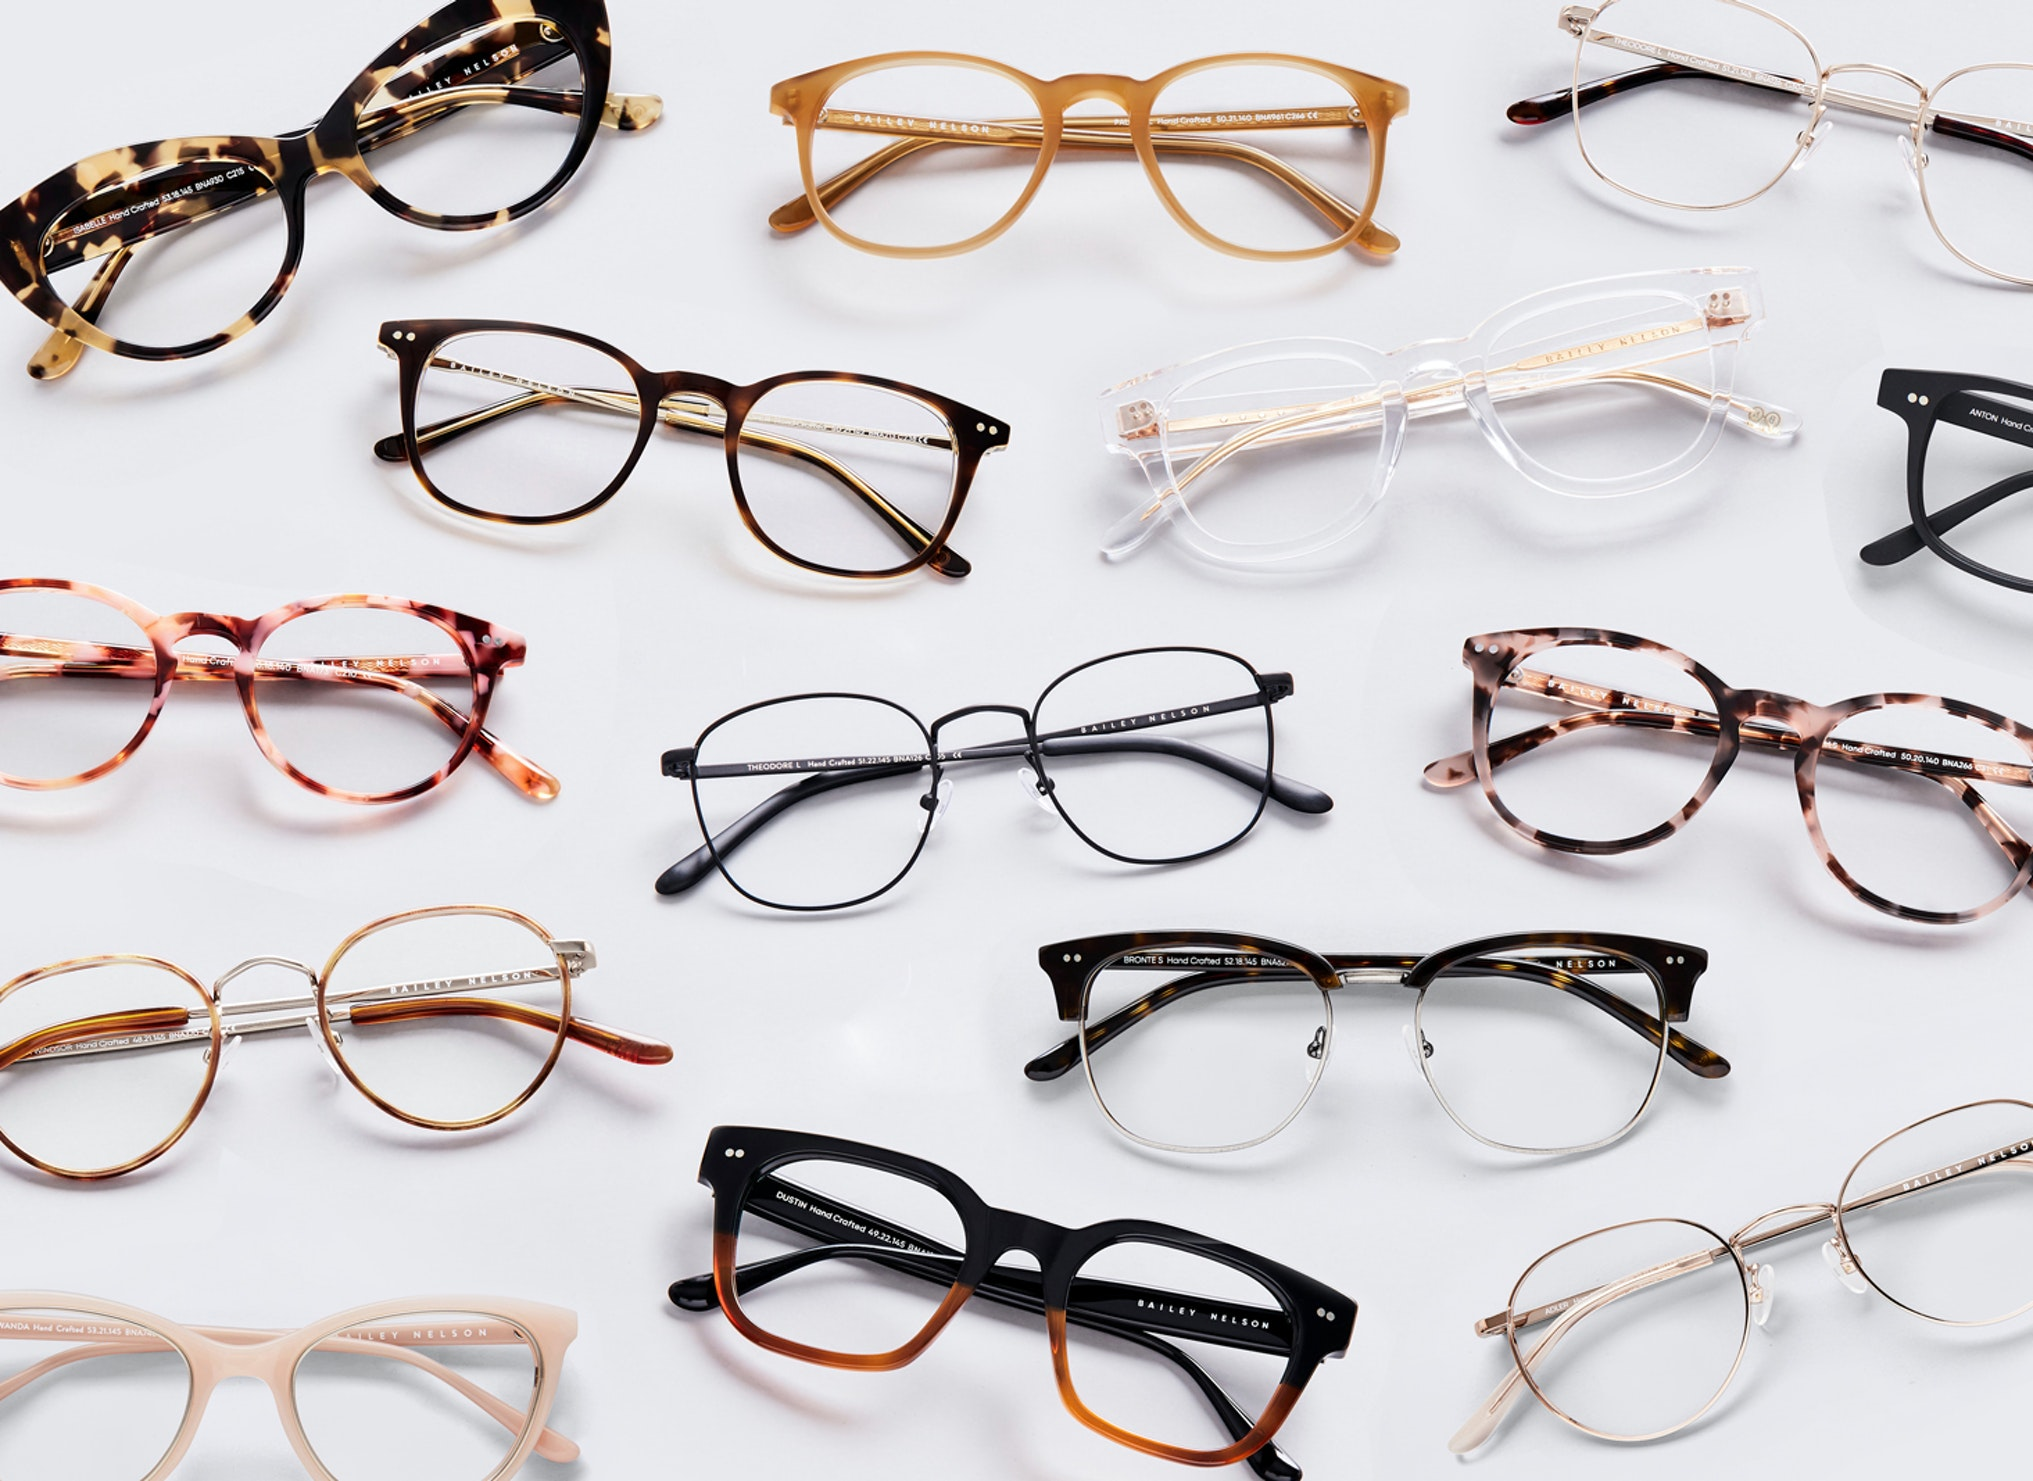 optical glasses in different colours and shapes